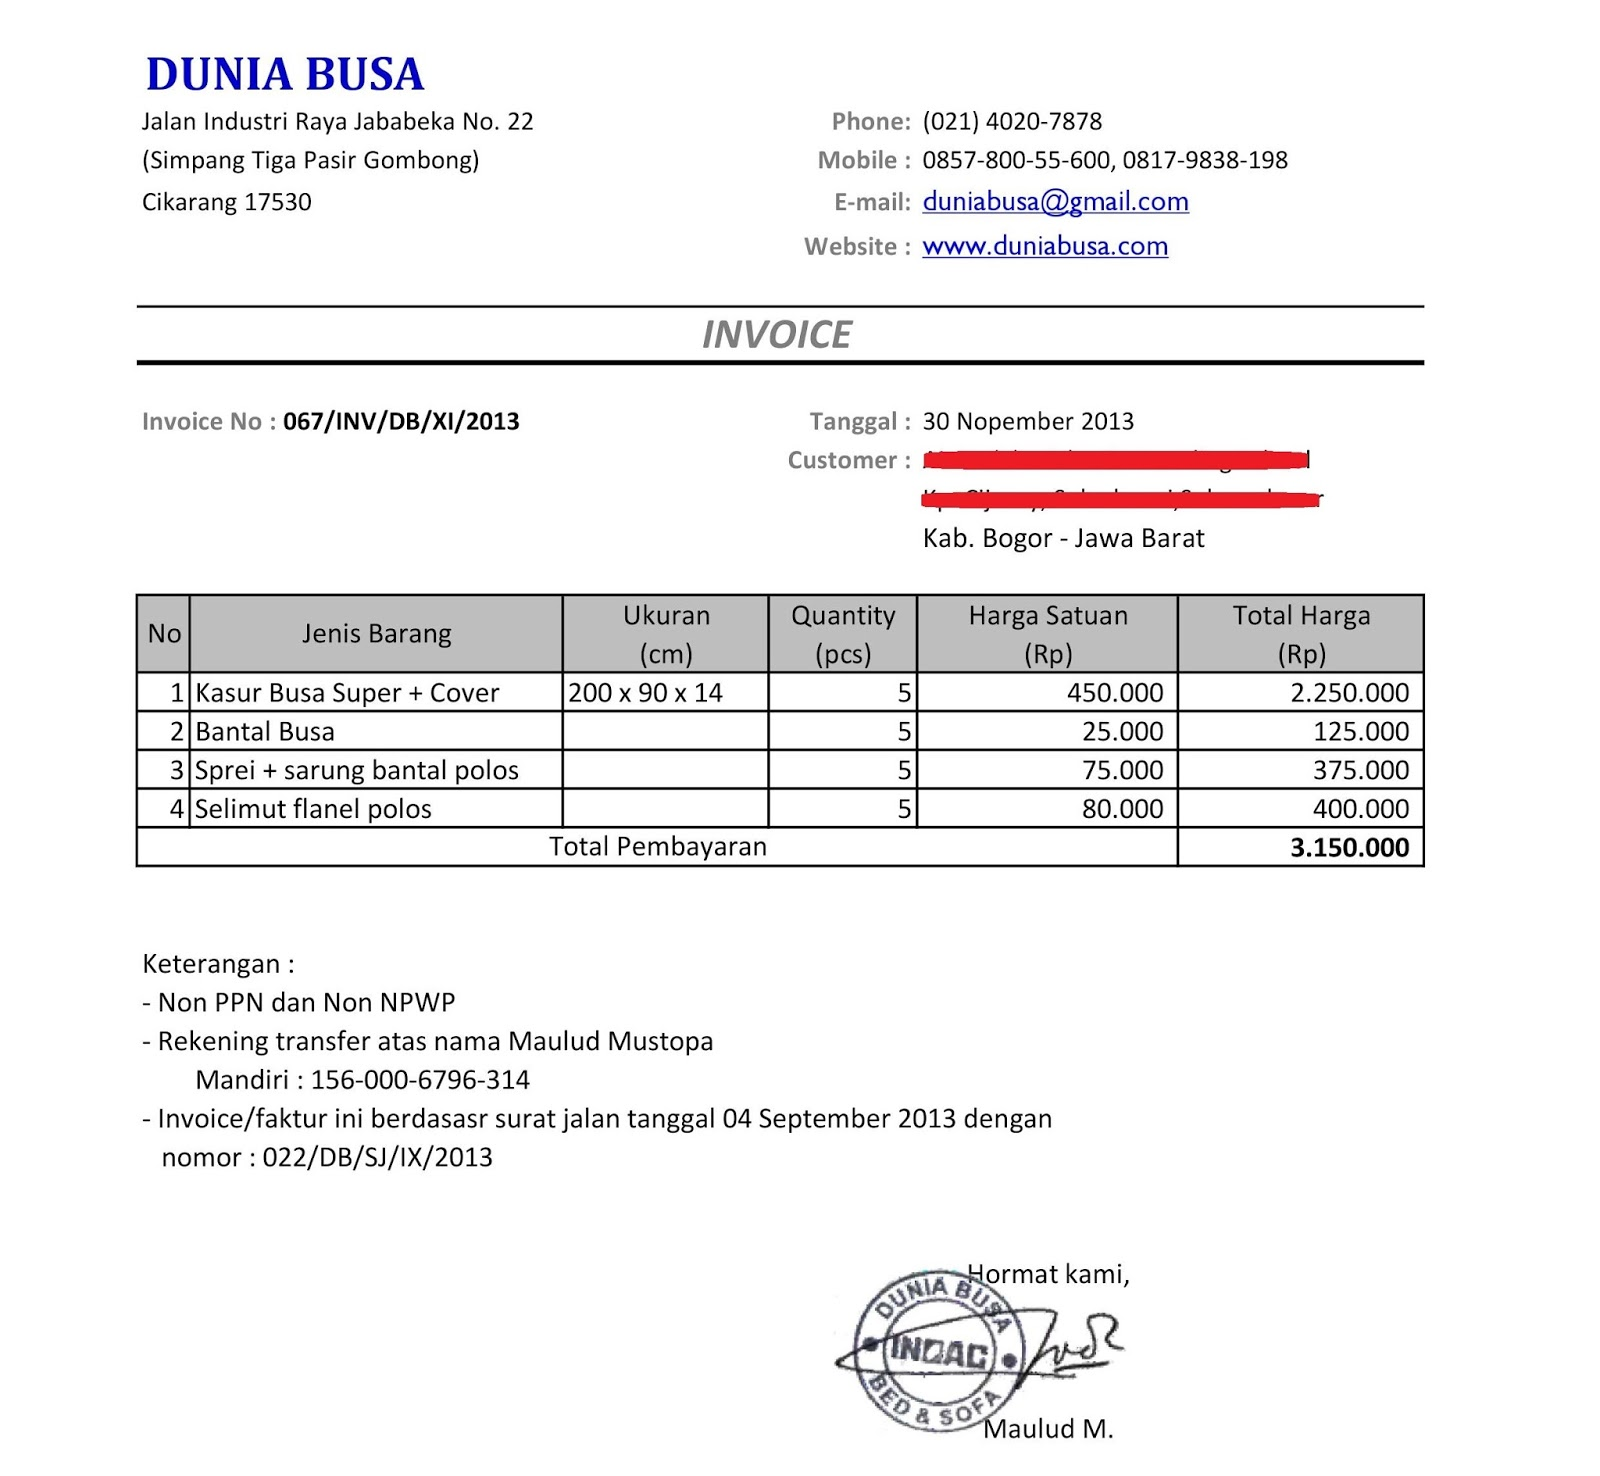 Aldiablosus  Seductive Free Invoice Online  Create Invoice Online  Invoice Template  With Glamorous Contoh Format Invoice Atau Surat Tagihan  Brankas Arsip  Free Invoice Online With Appealing Hvac Invoice Sample Also Invoice Proposal Template In Addition Templates Invoice And Expense Invoice As Well As How Do You Send An Invoice Additionally Invoice Accrual From Sklepco With Aldiablosus  Glamorous Free Invoice Online  Create Invoice Online  Invoice Template  With Appealing Contoh Format Invoice Atau Surat Tagihan  Brankas Arsip  Free Invoice Online And Seductive Hvac Invoice Sample Also Invoice Proposal Template In Addition Templates Invoice From Sklepco